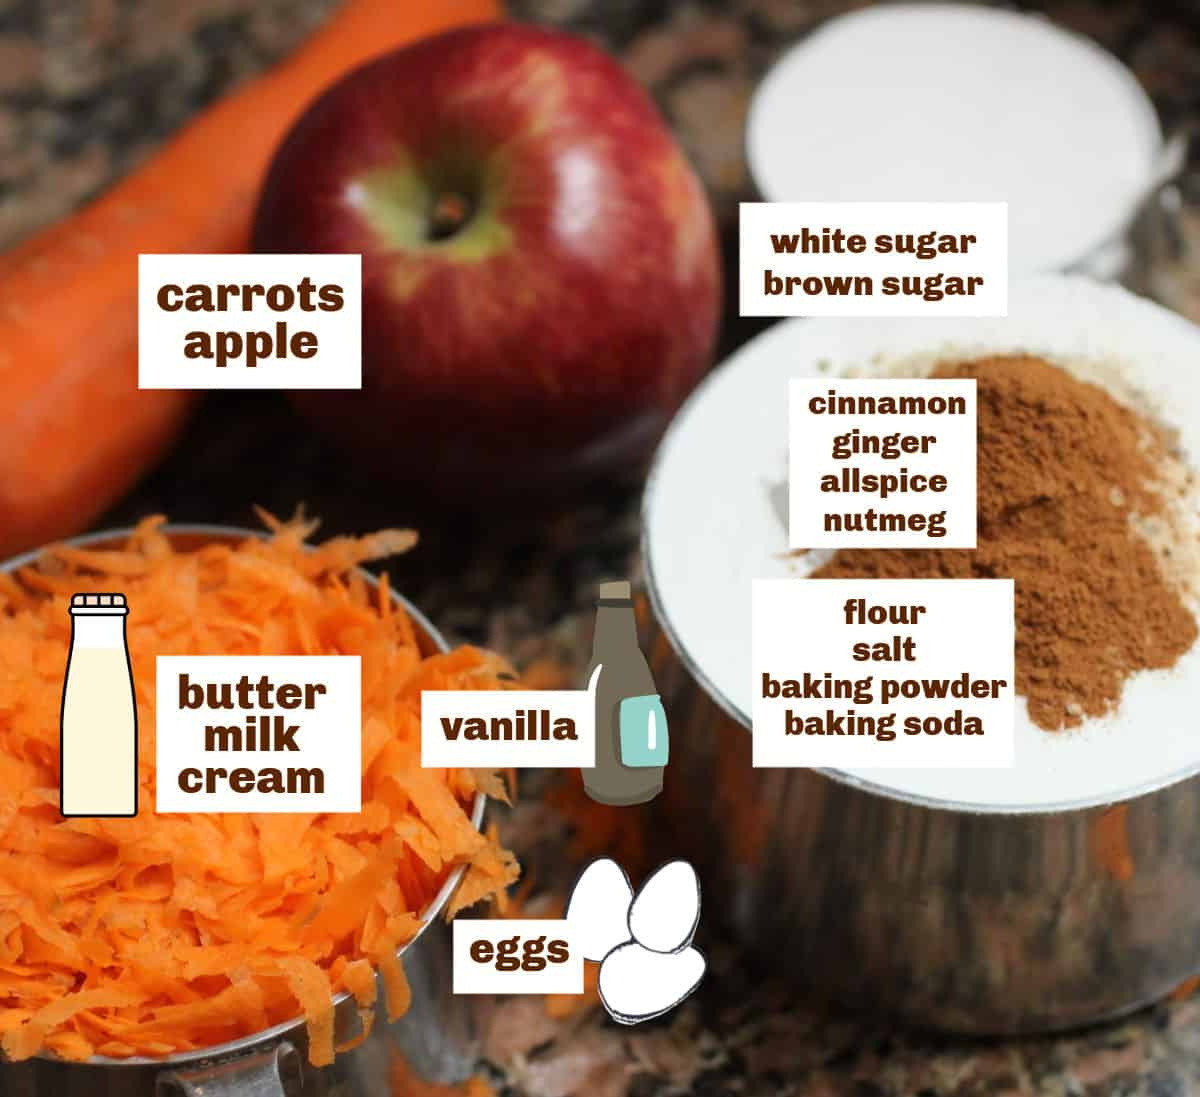 Carrot cake ingredients on dark marble, including grated carrot, apple, with white and brown text overlay